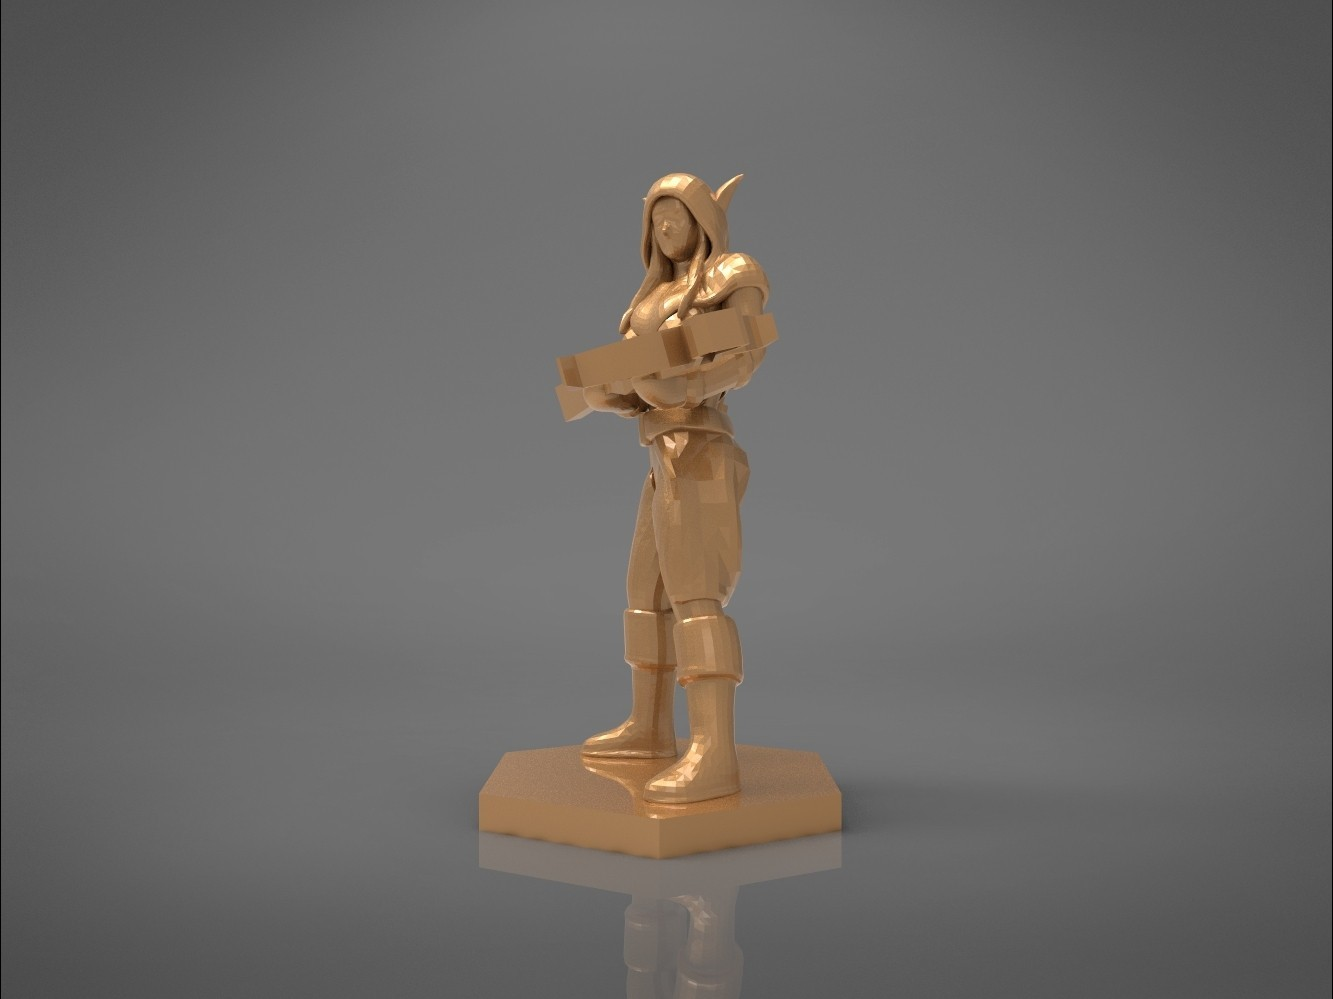 female_ranger-right_perspective.524.jpg Download STL file ELF RANGER FEMALE CHARACTER GAME FIGURES 3D print model • 3D printing object, 3D-mon